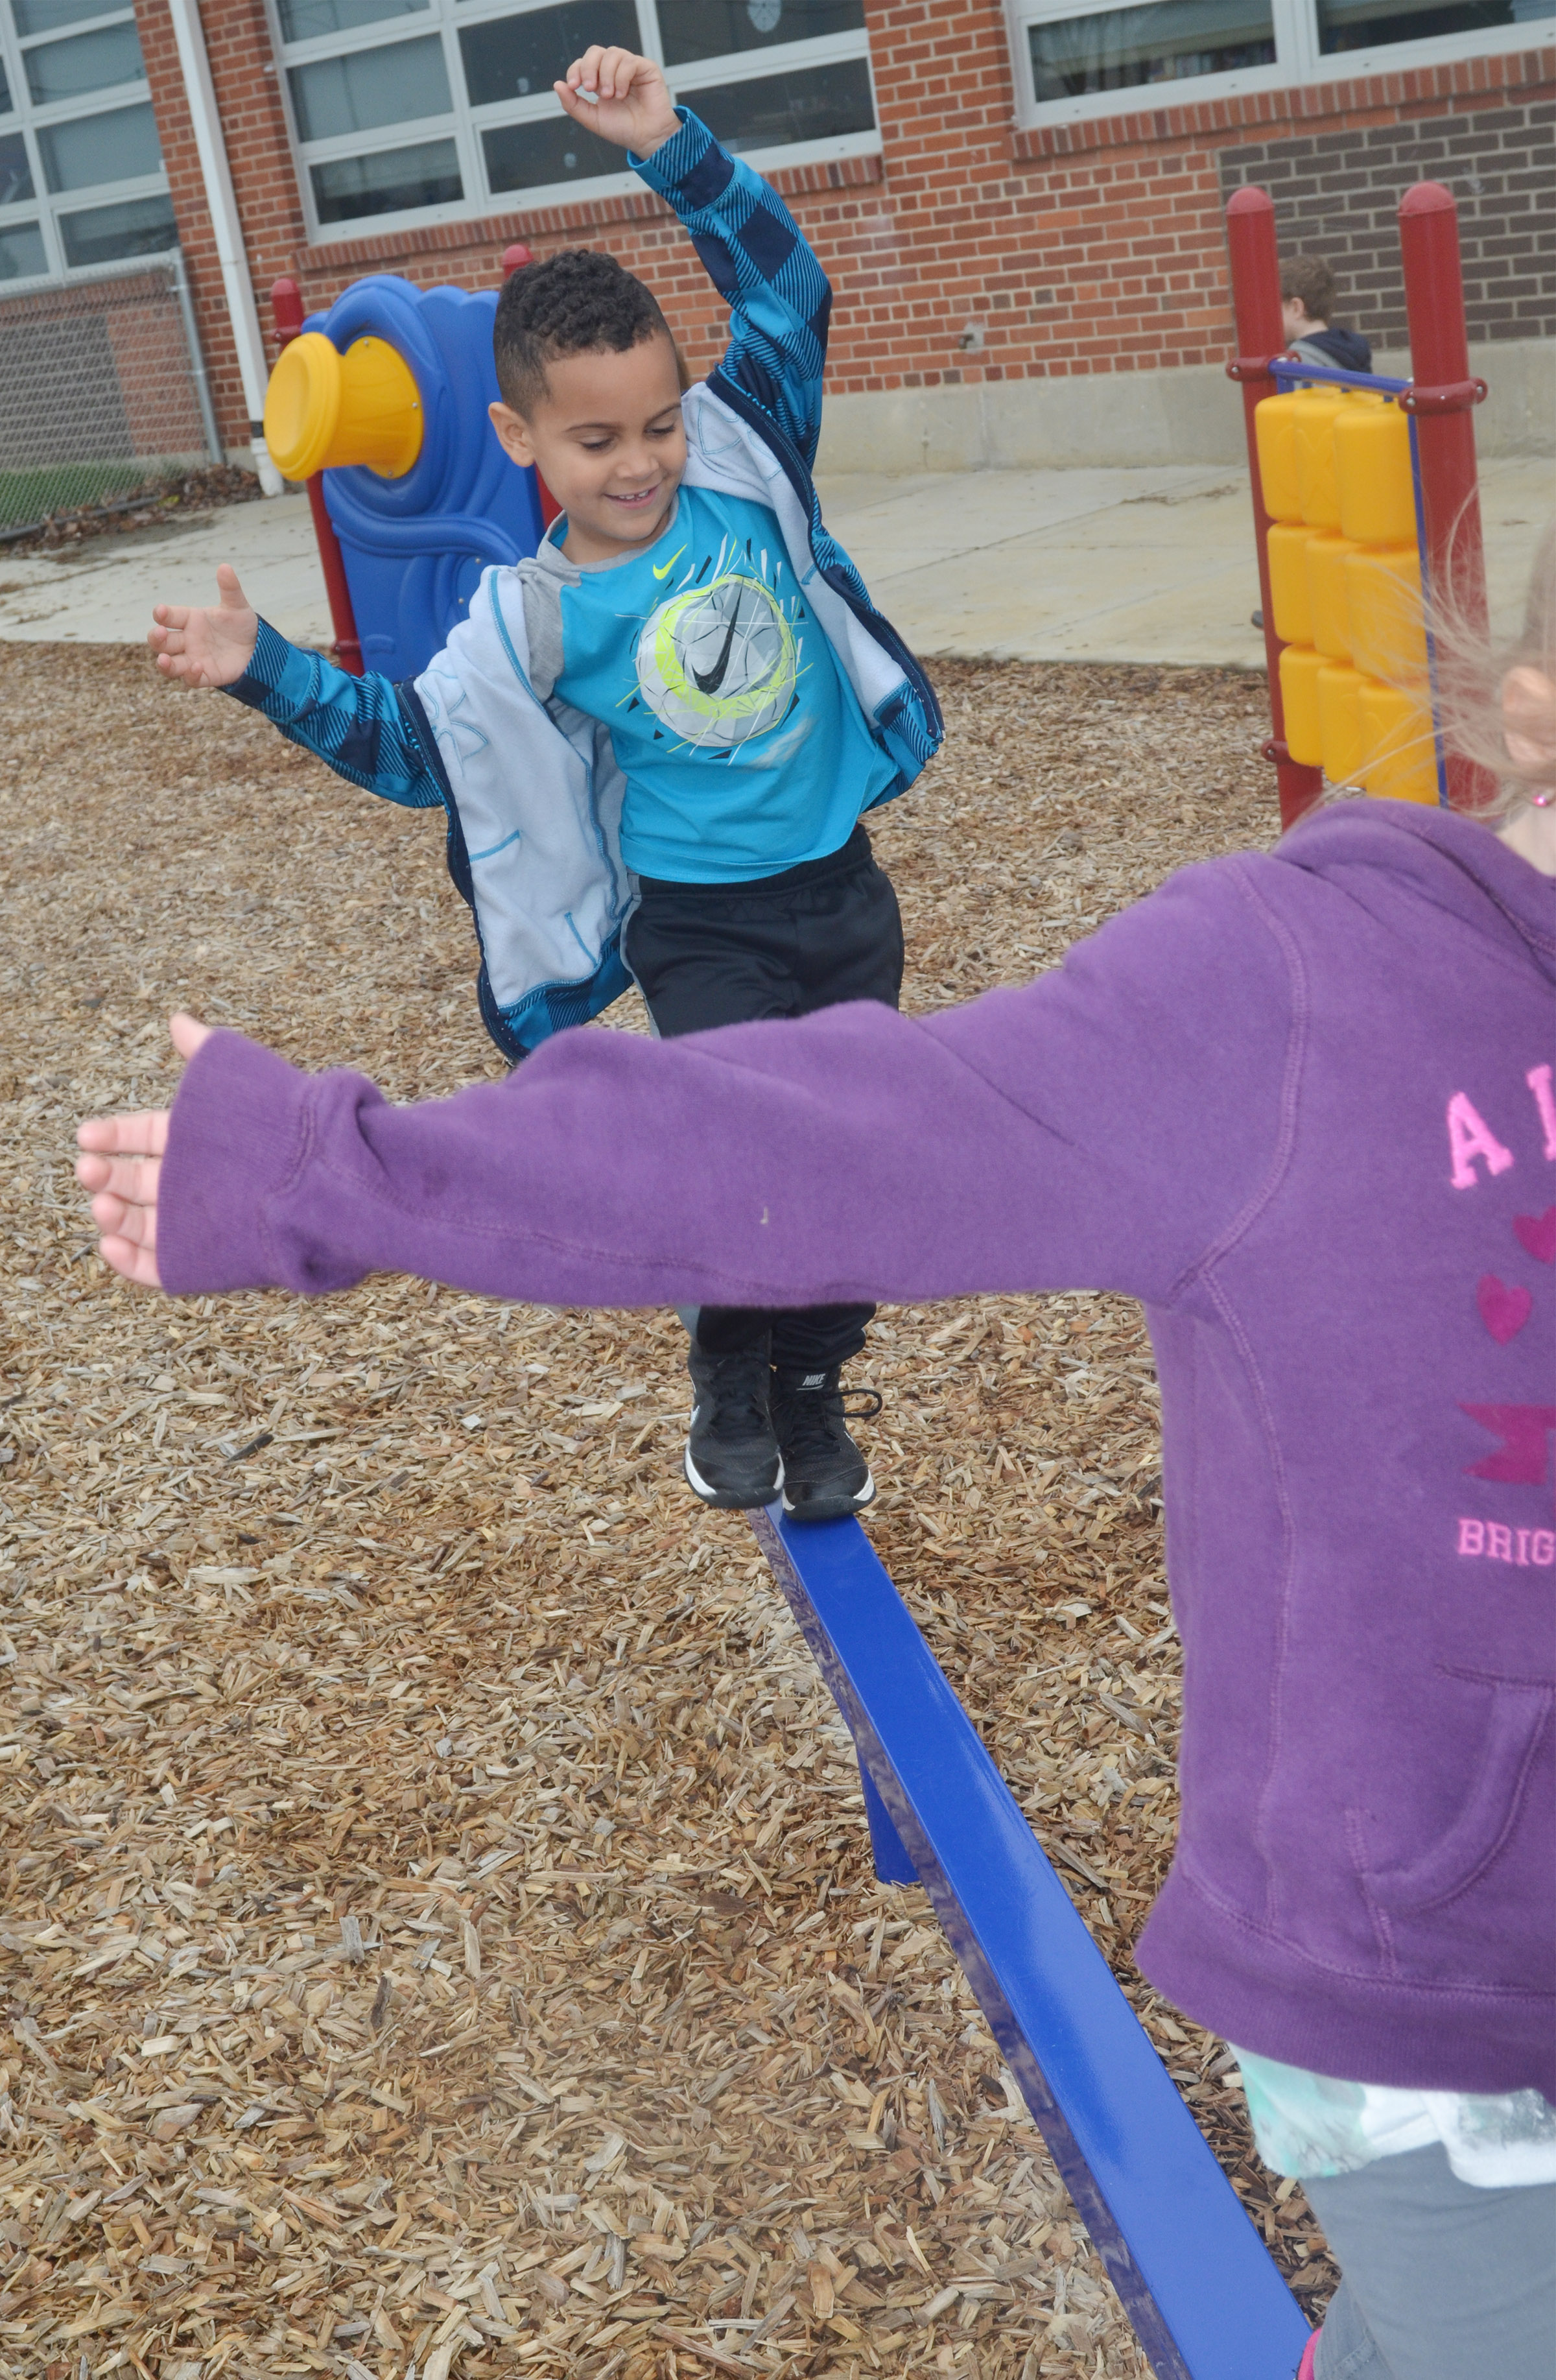 CES preschool student Kingston Cowherd balances on the balance beam as he and his classmates enjoy some playground time.